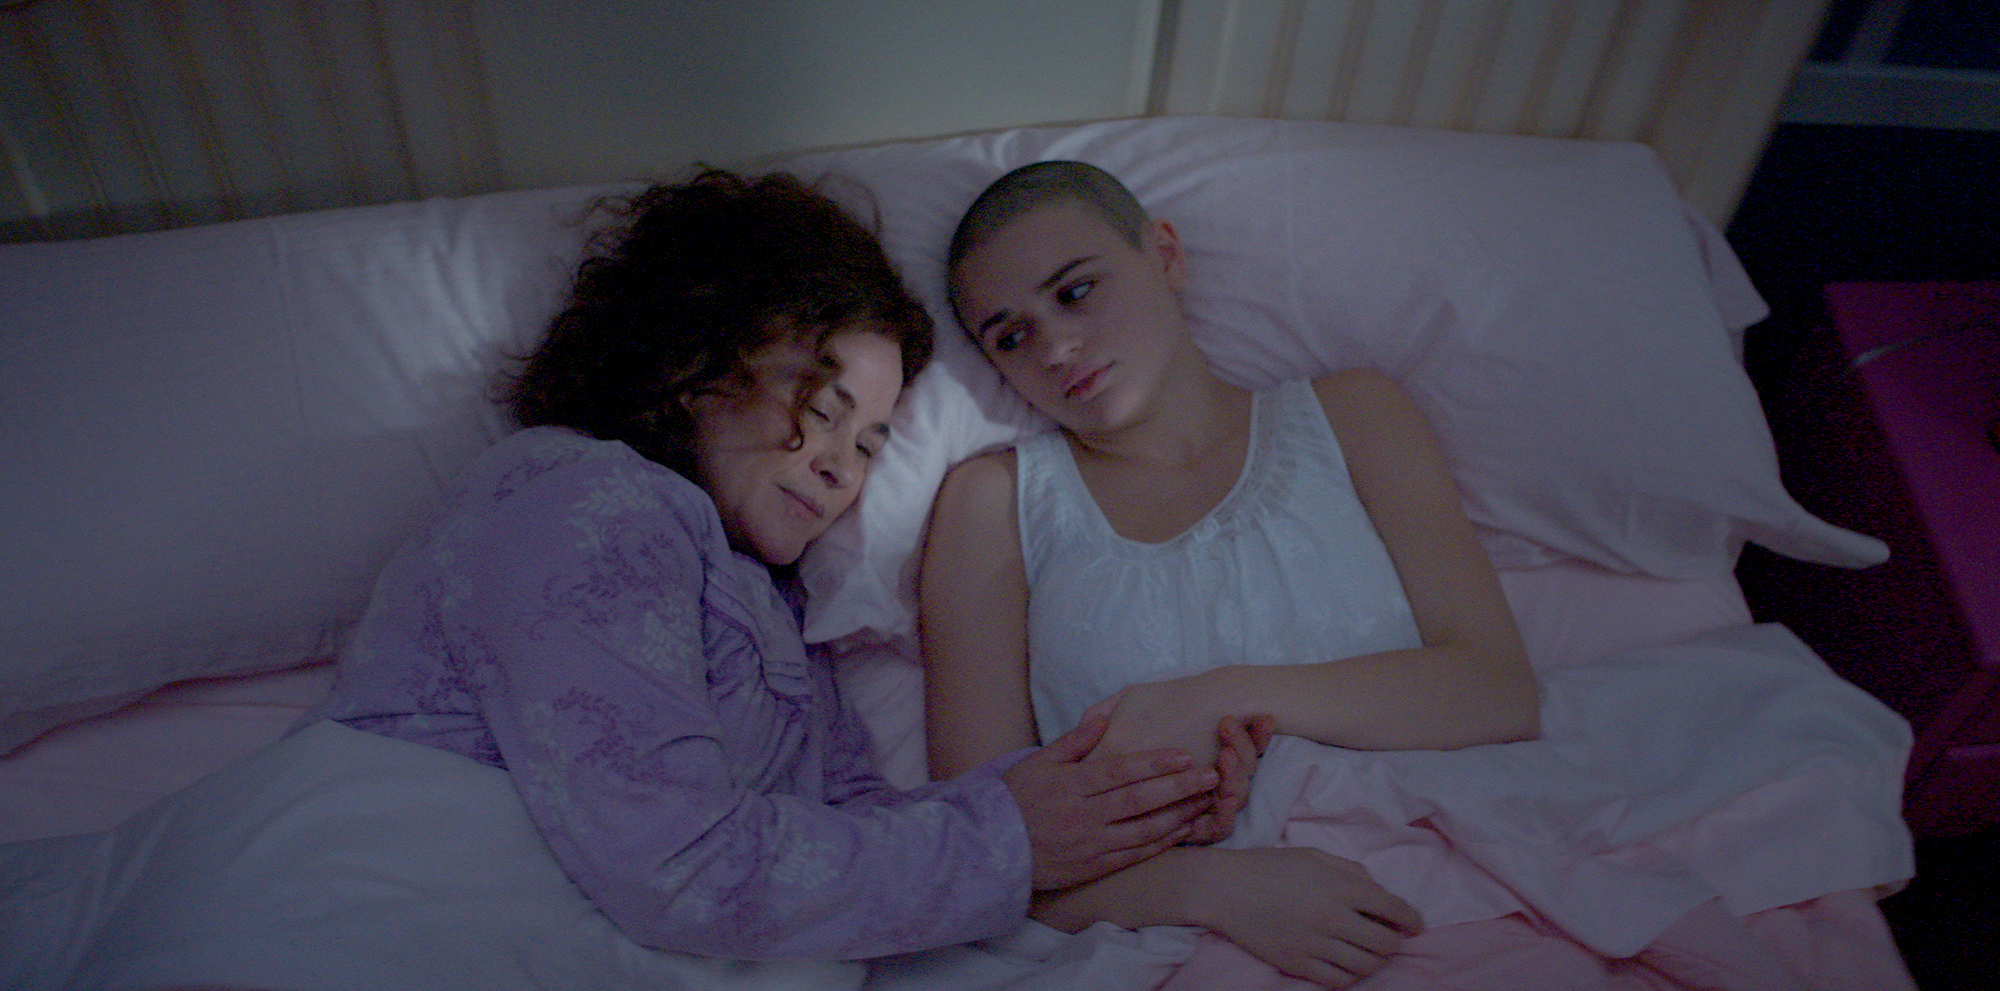 Dee-Dee-Blanchard-(Patricia-Arquette)-and-Gypsy-Rose-Blanchard-(Joey-King)-The-Act-2 - As for why Dee Dee did what she did, the investigation points to Munchausen by proxy, a syndrome in which a person fakes someone else's illness in hope of benefitting themselves. She went by multiple different aliases through her life, told lies about her family and of course, about Gypsy's health.